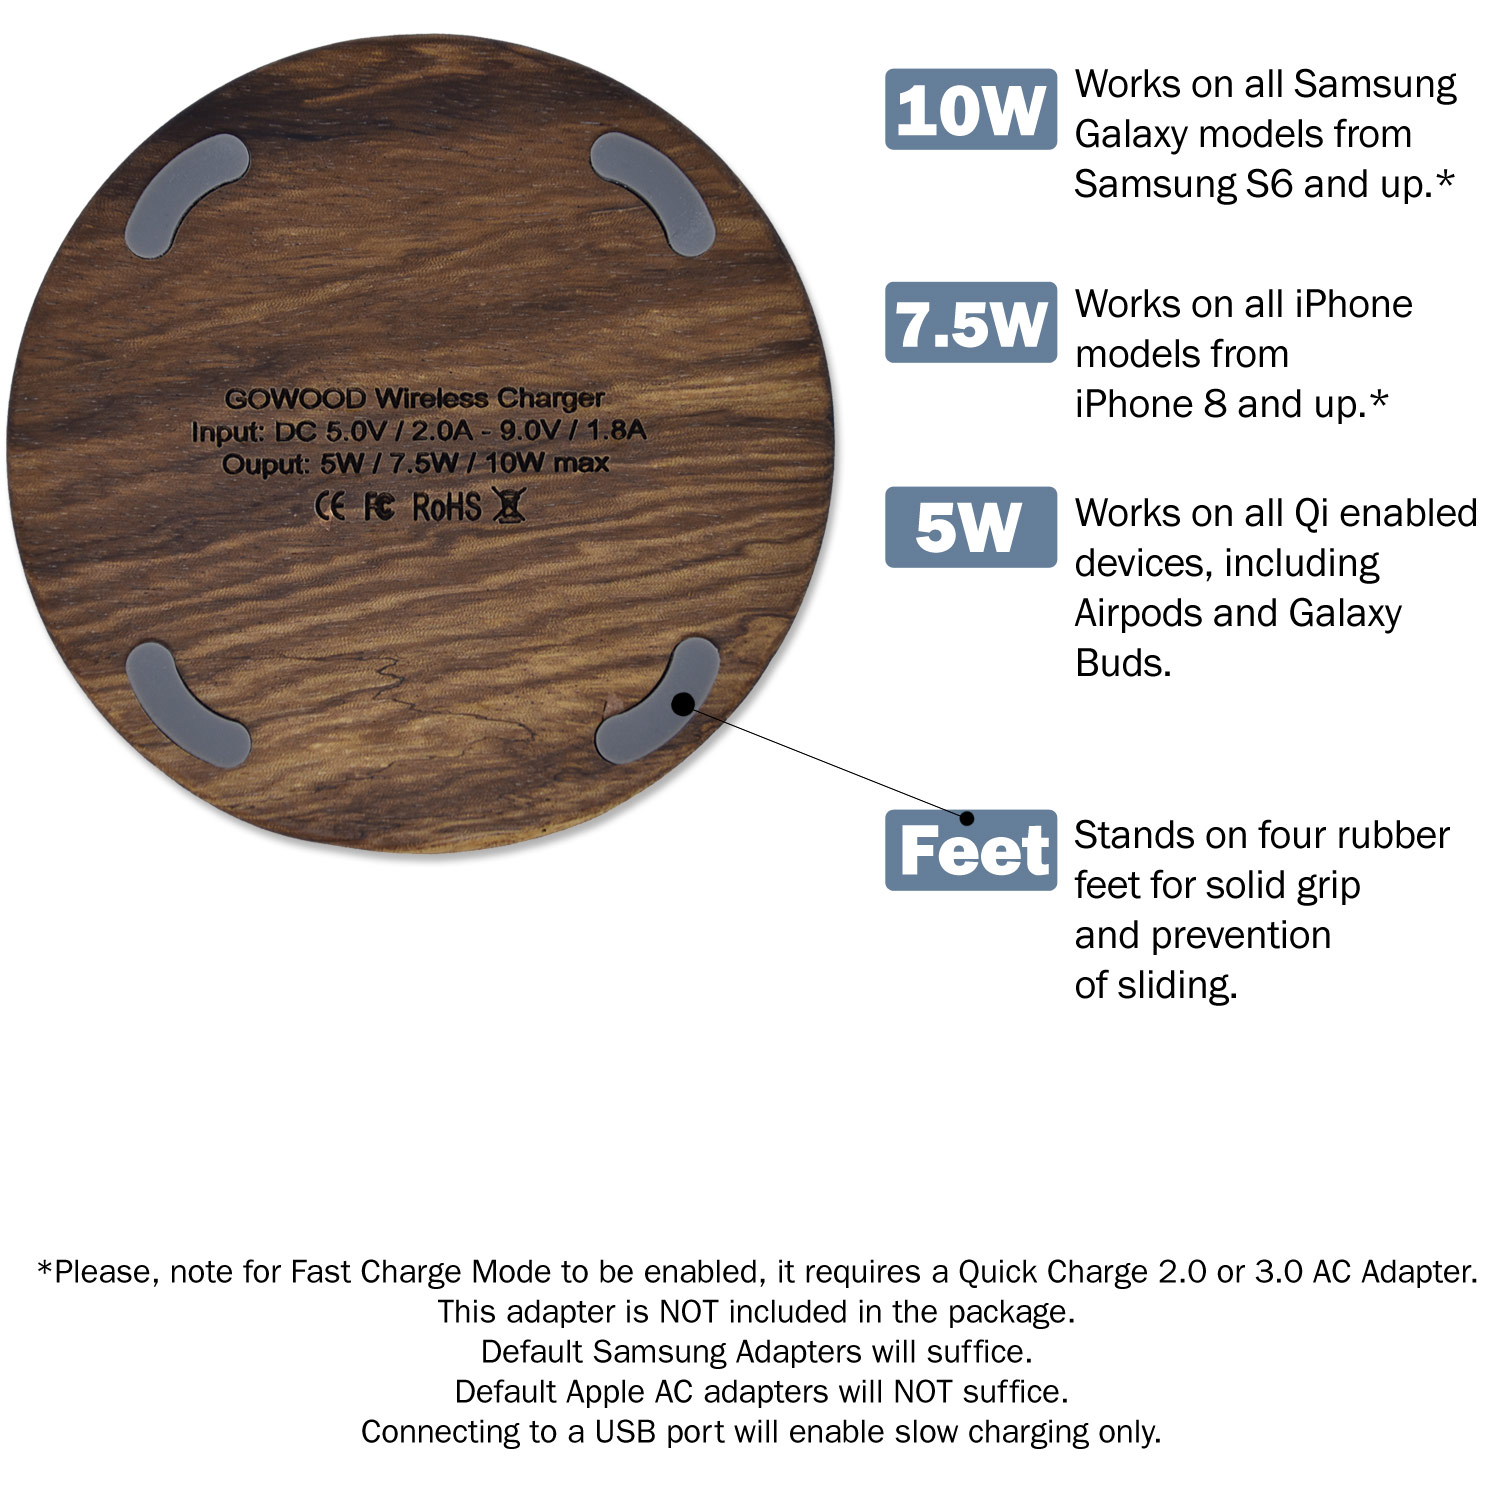 15W Fast charge zebra wood wireless charger positioning